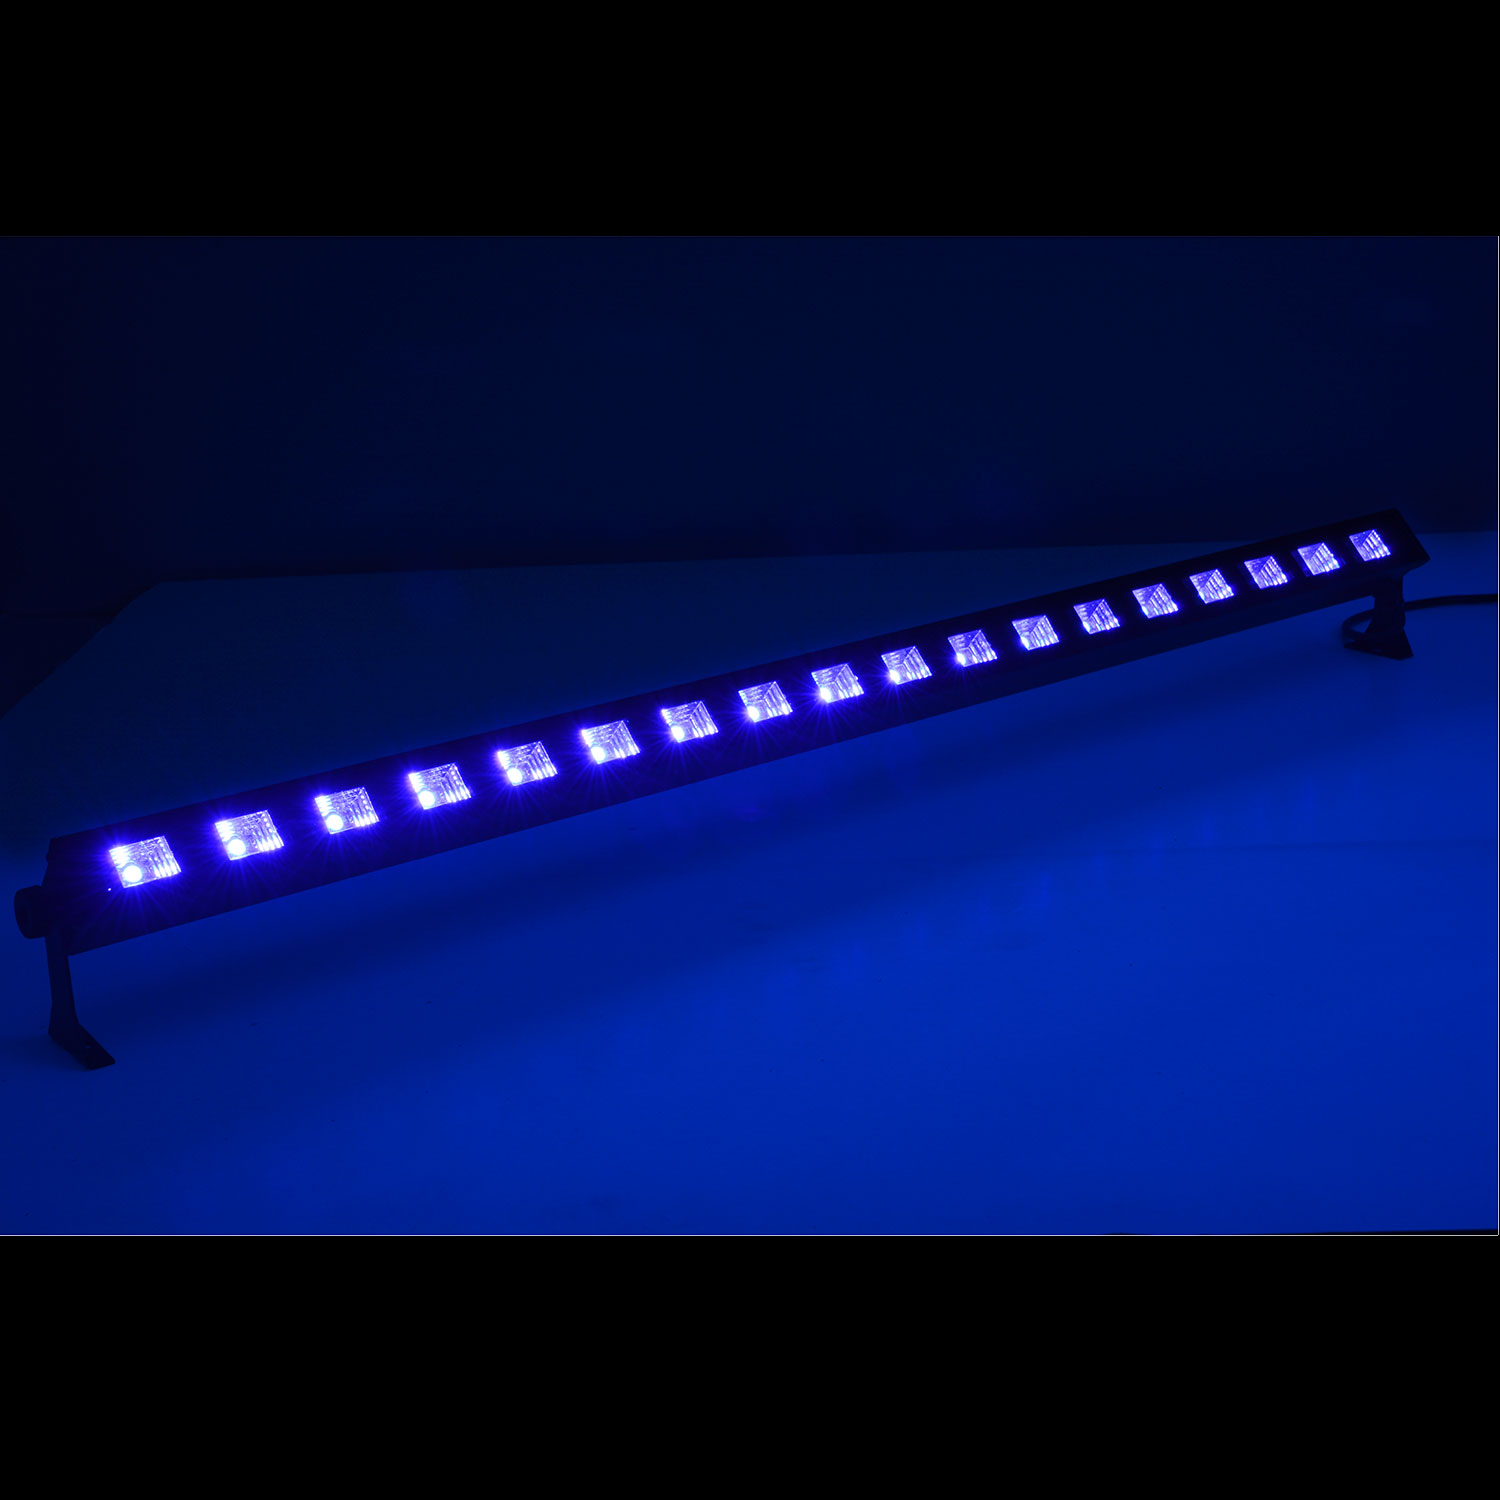 UVB-18 Ultraviolet LED Bar